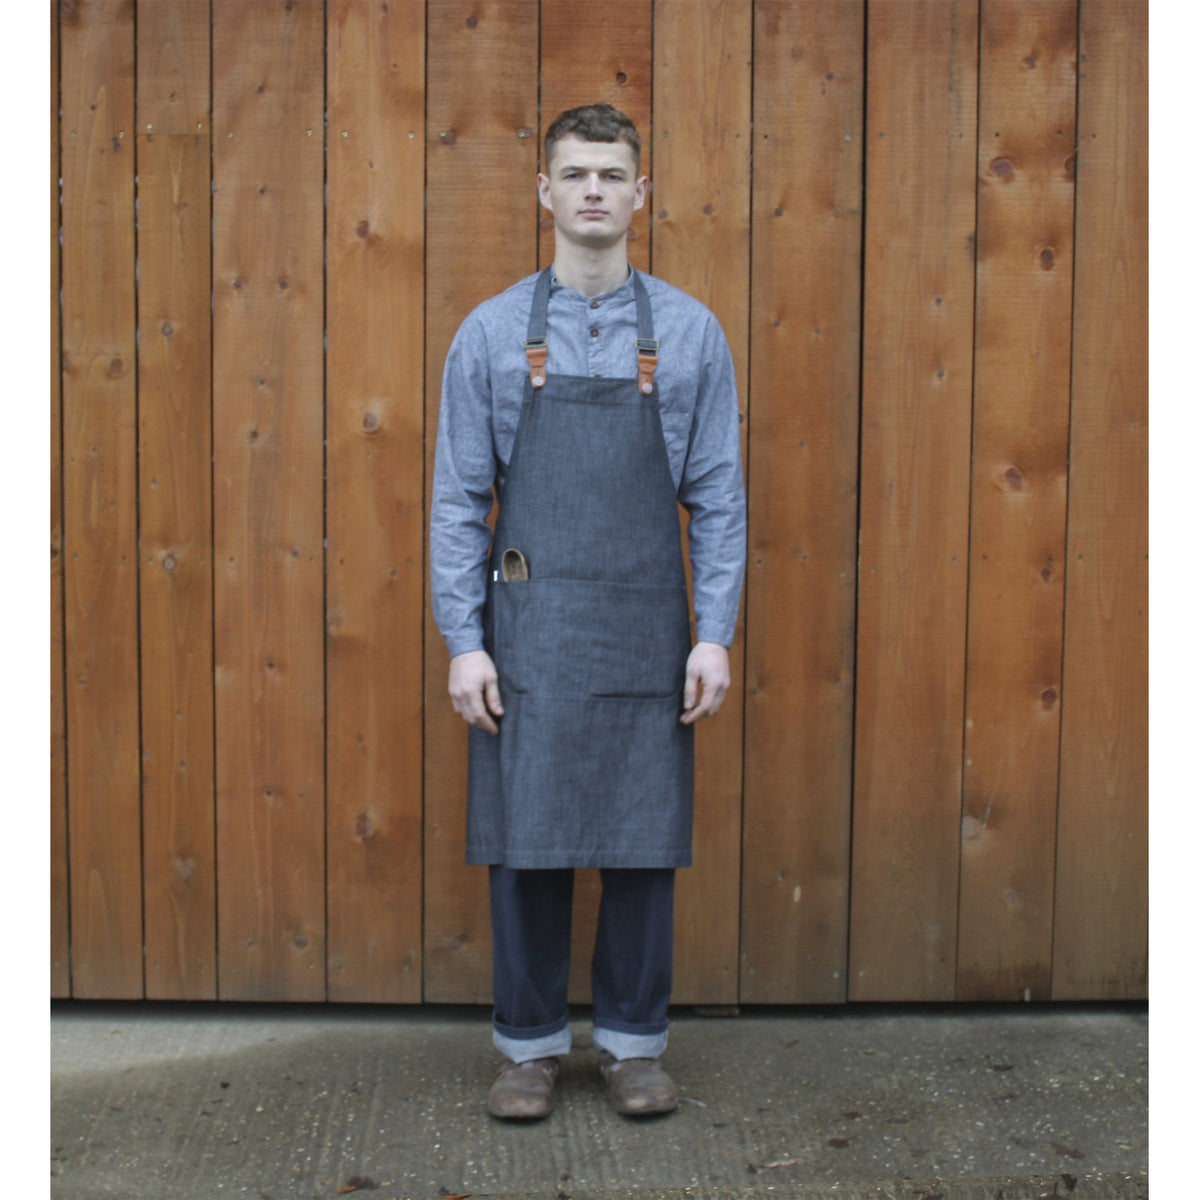 young man wearing a denim apron with leather fastenings